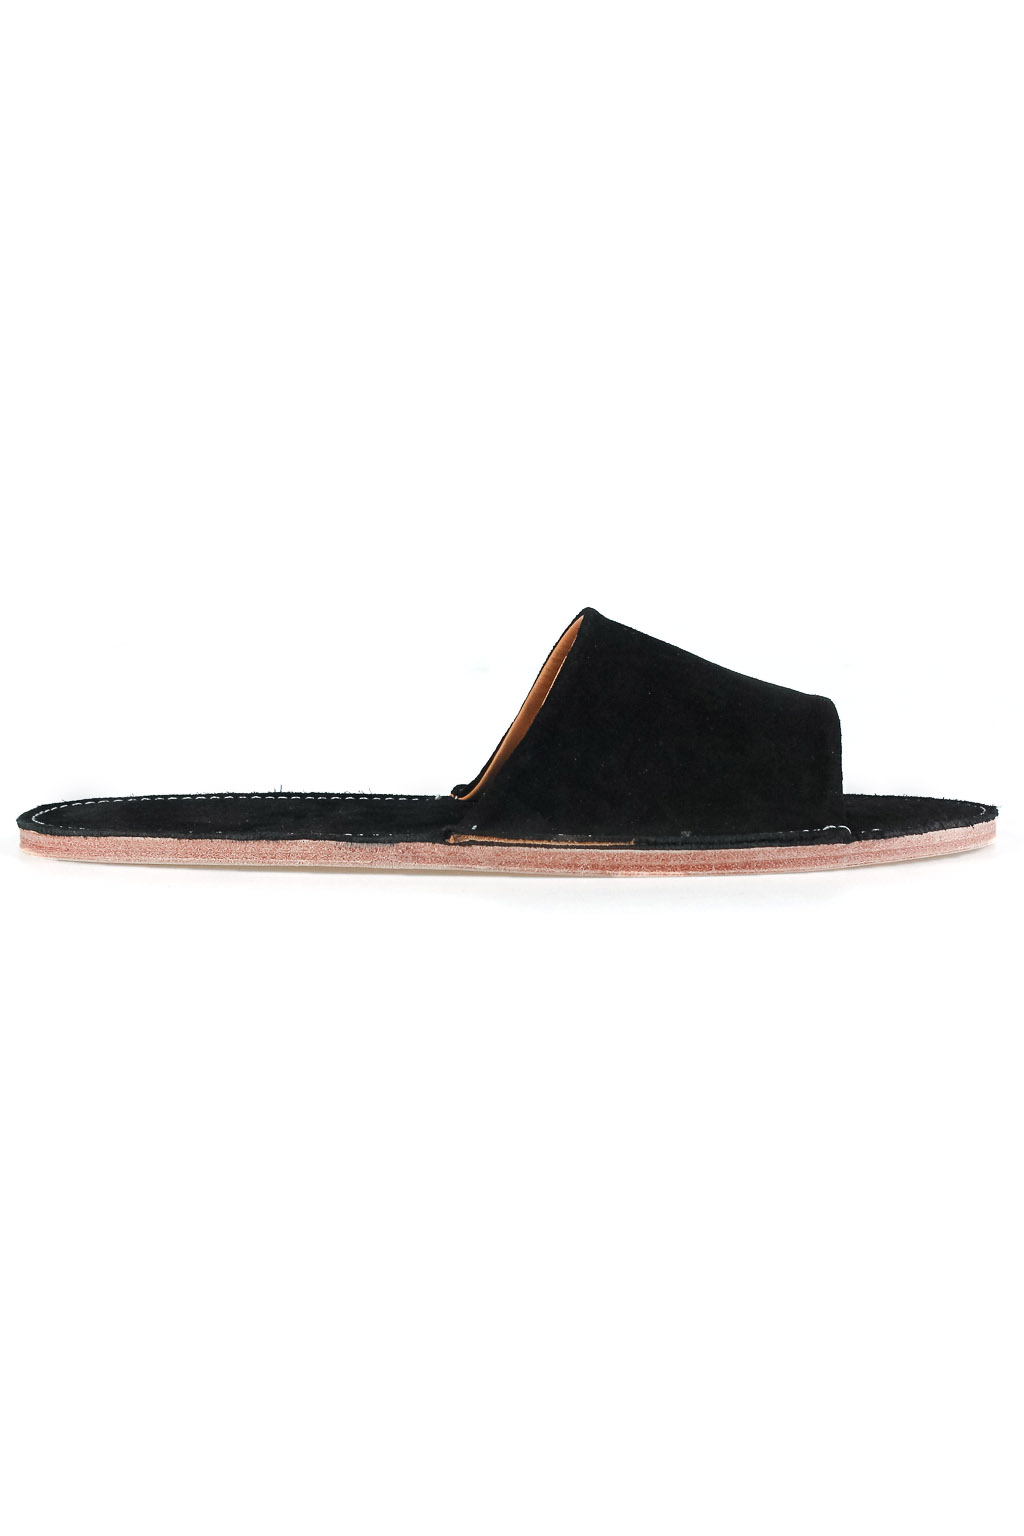 Viberg Open Toe Slides - Black Suede